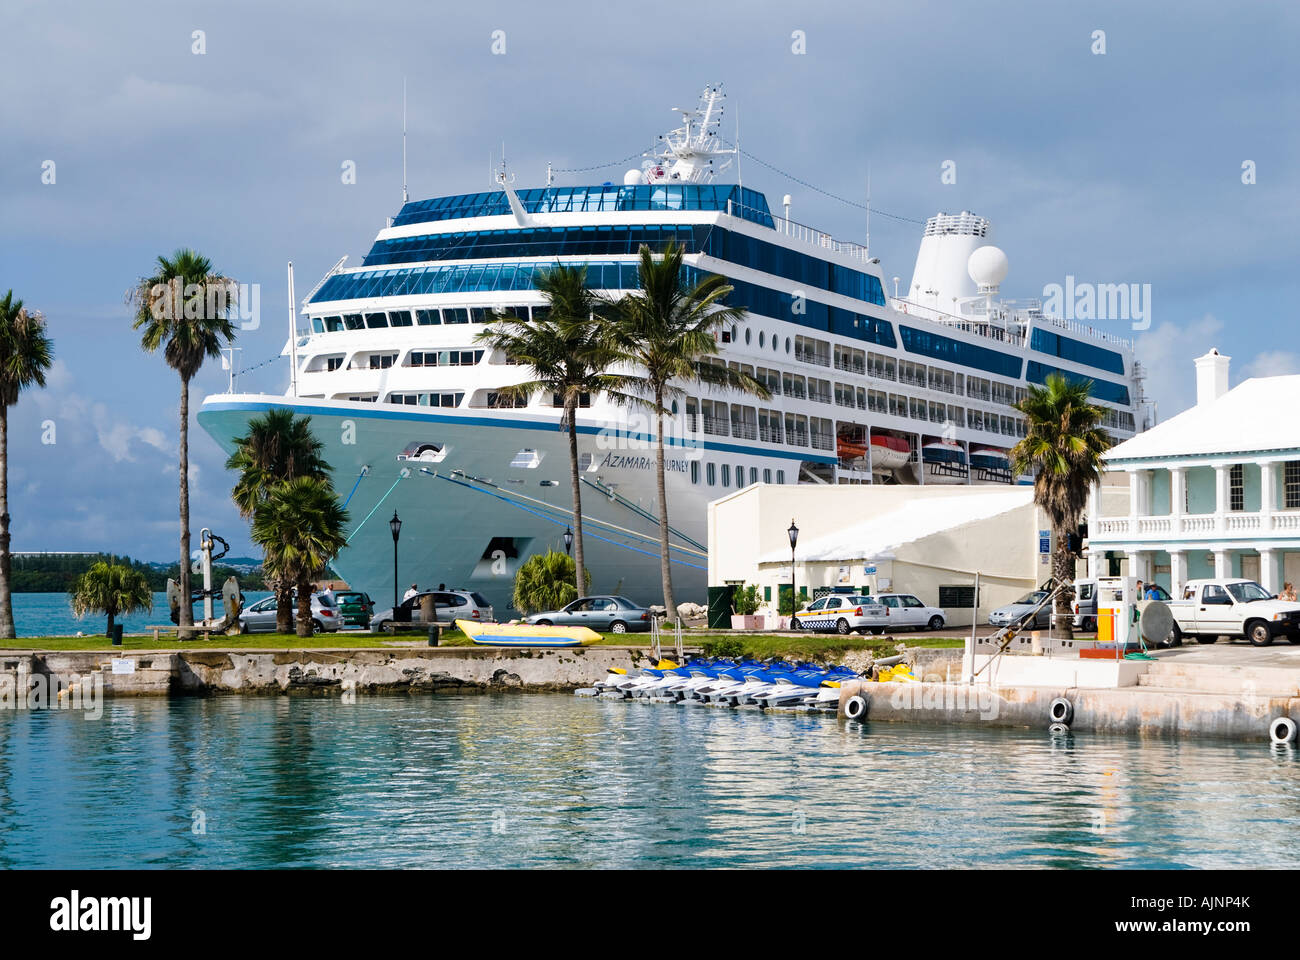 celebrity cruise ship docked in st george bermuda stock photo